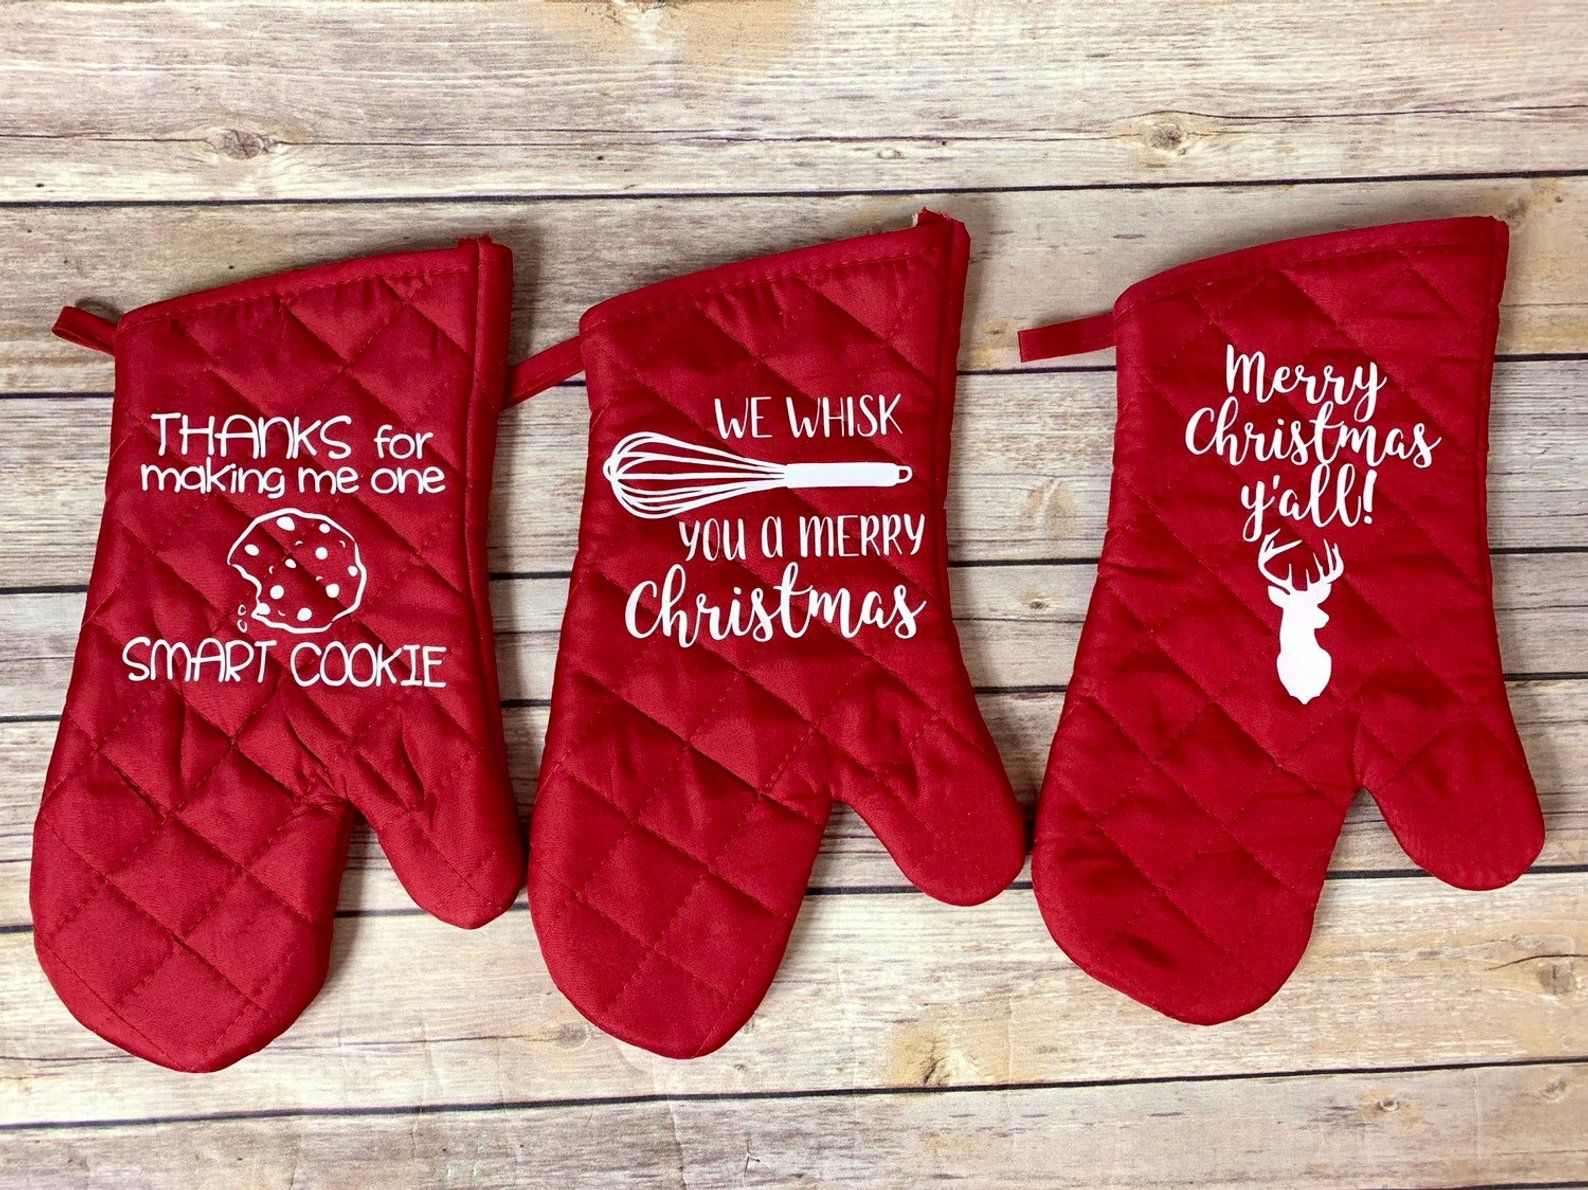 Thanks For Making Me One Smart Cookie Pot Holder Oven Mitt Teacher Gift Teacher Appreciation Back To School Gift End Of School Gift With Images Back To School Gifts One Smart